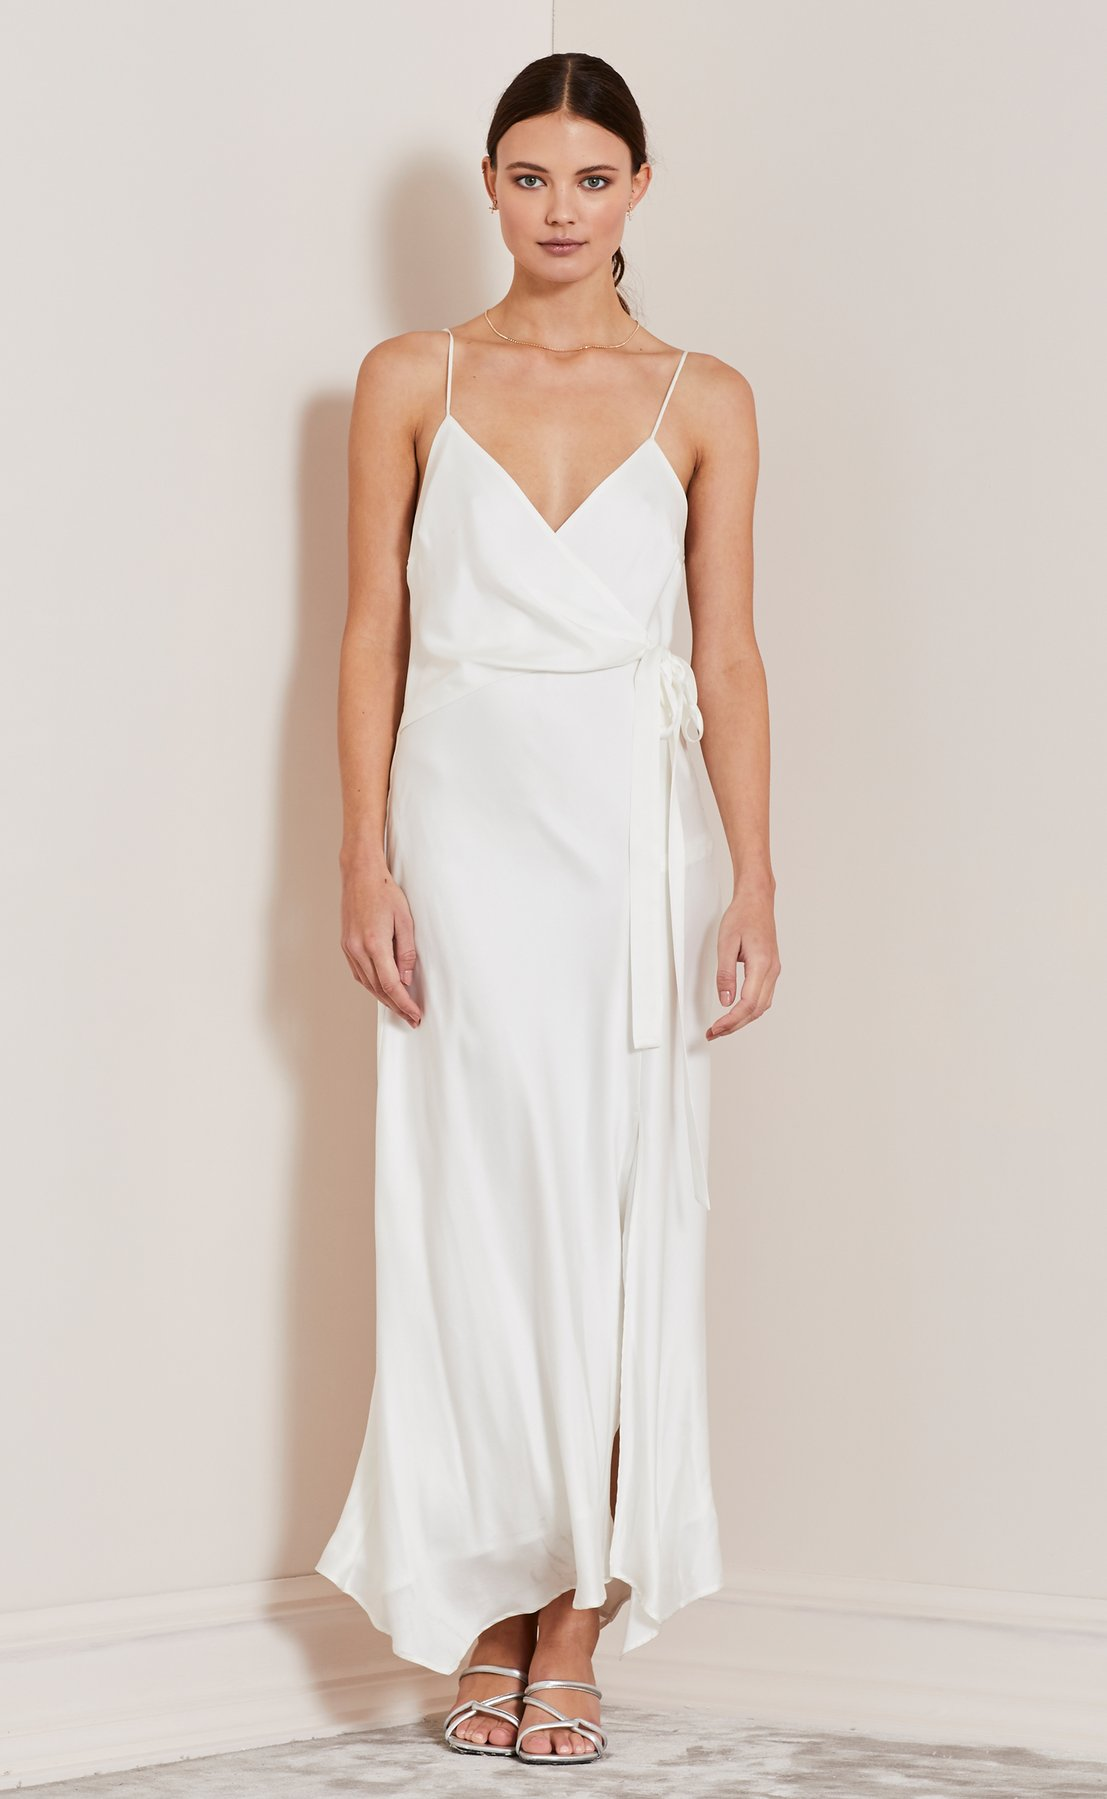 BEC & BRIDGE Heartbeat Wrap dress | 12 Bridal Gowns You Can Buy For Under $1,000 | LOVE FIND CO. Bridal Dress Directory